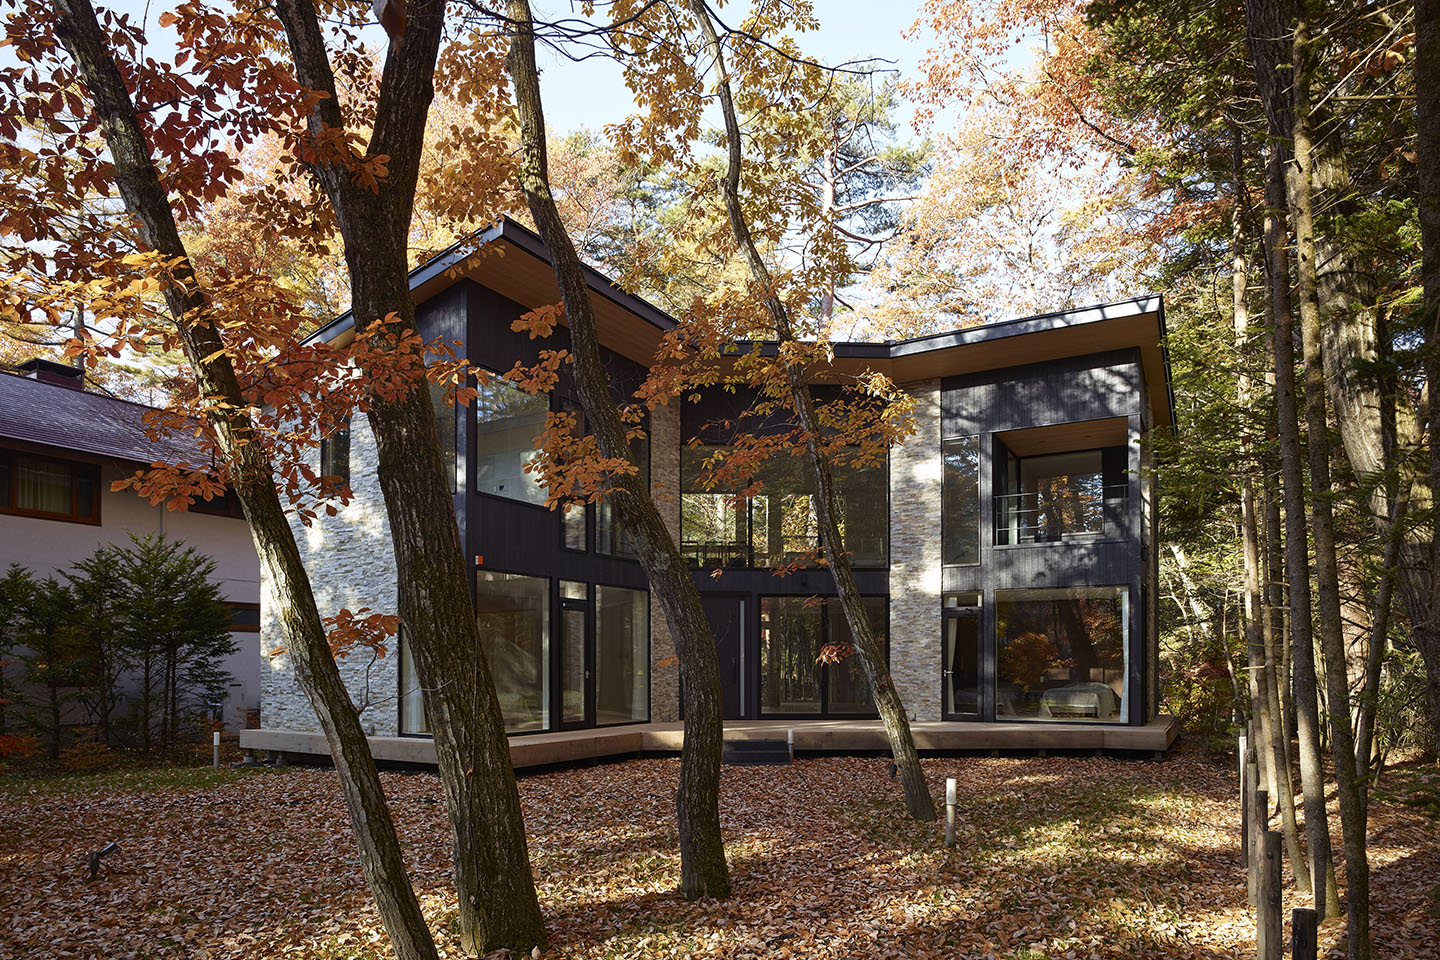 Villa In Forest 05